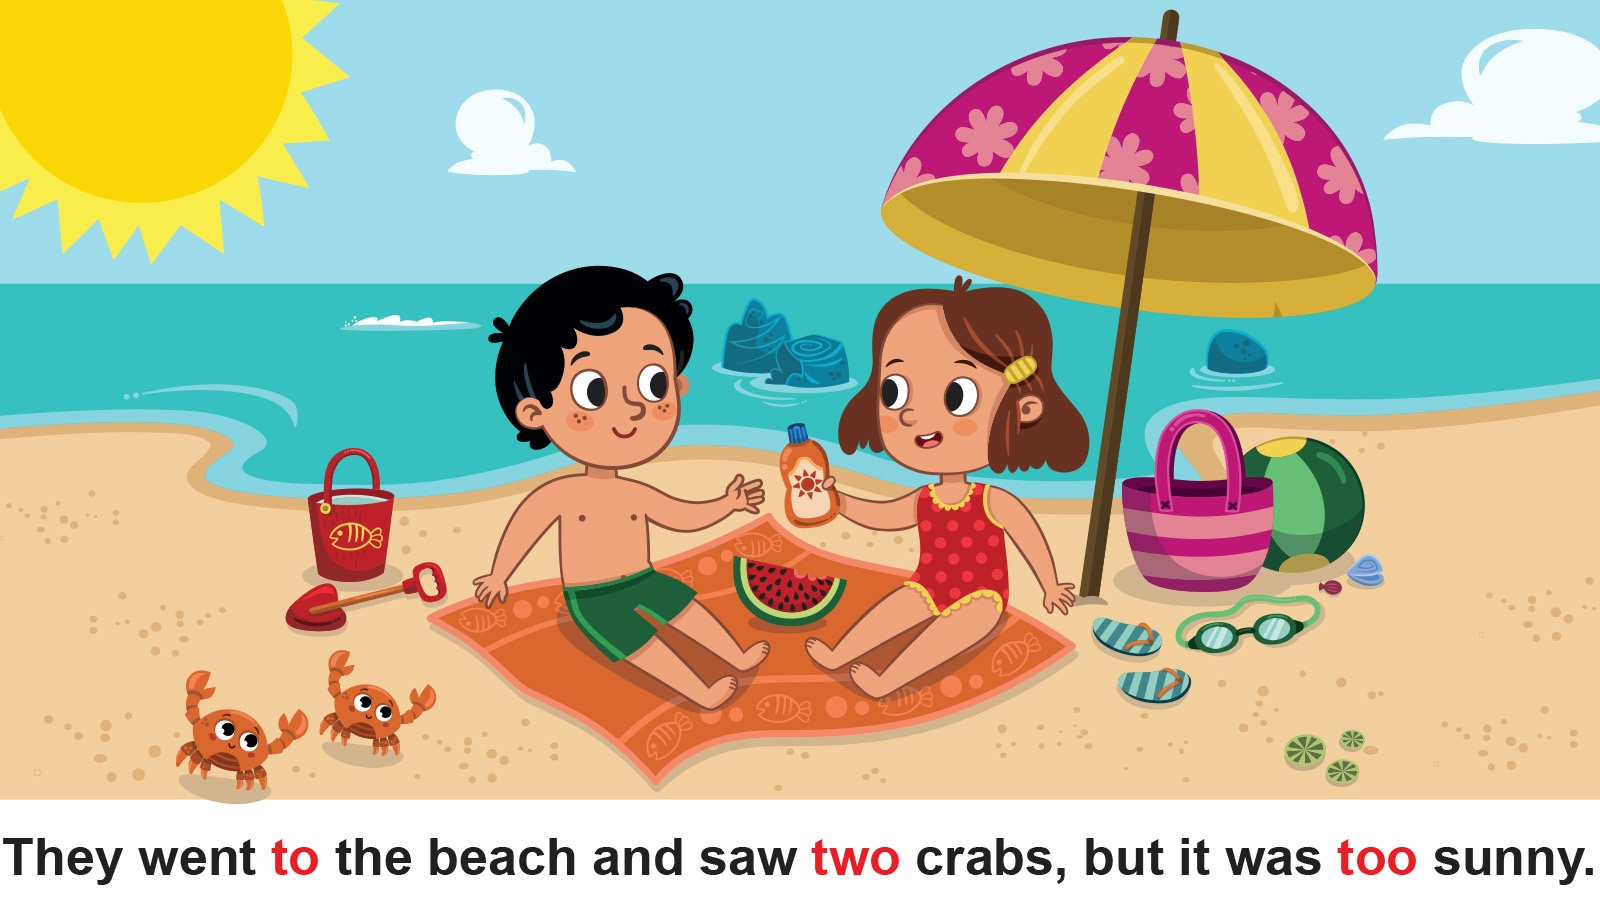 Kids at beach comparing 'to', 'two', 'too'.